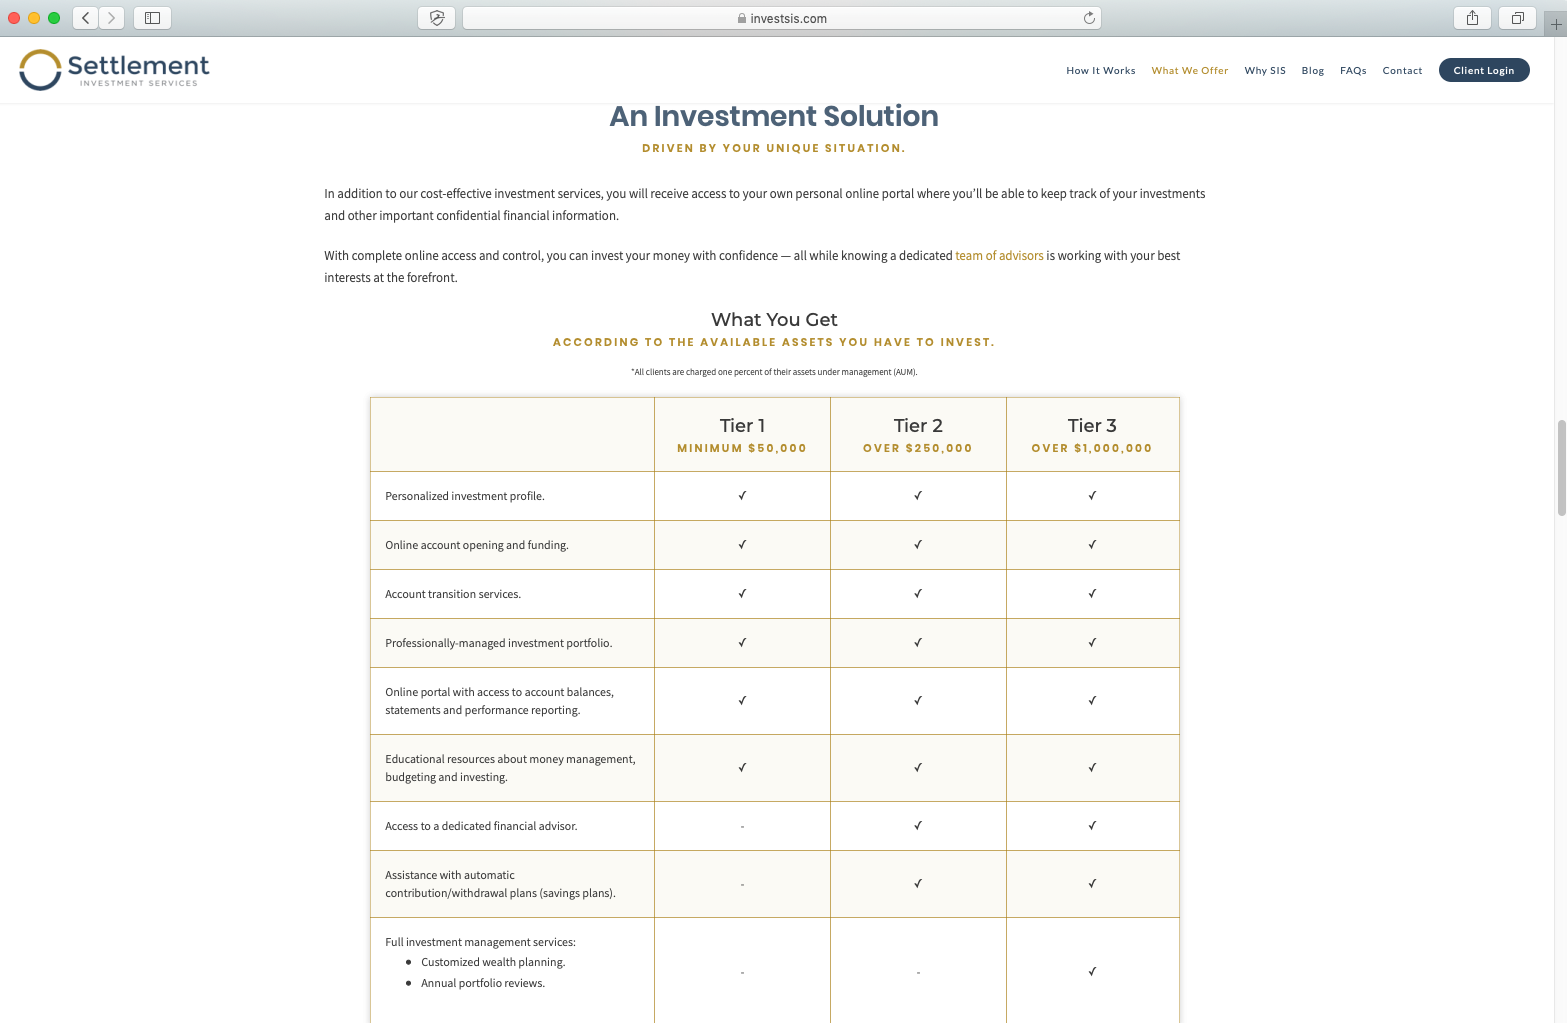 example of fee table on advisor website, settlement investment services